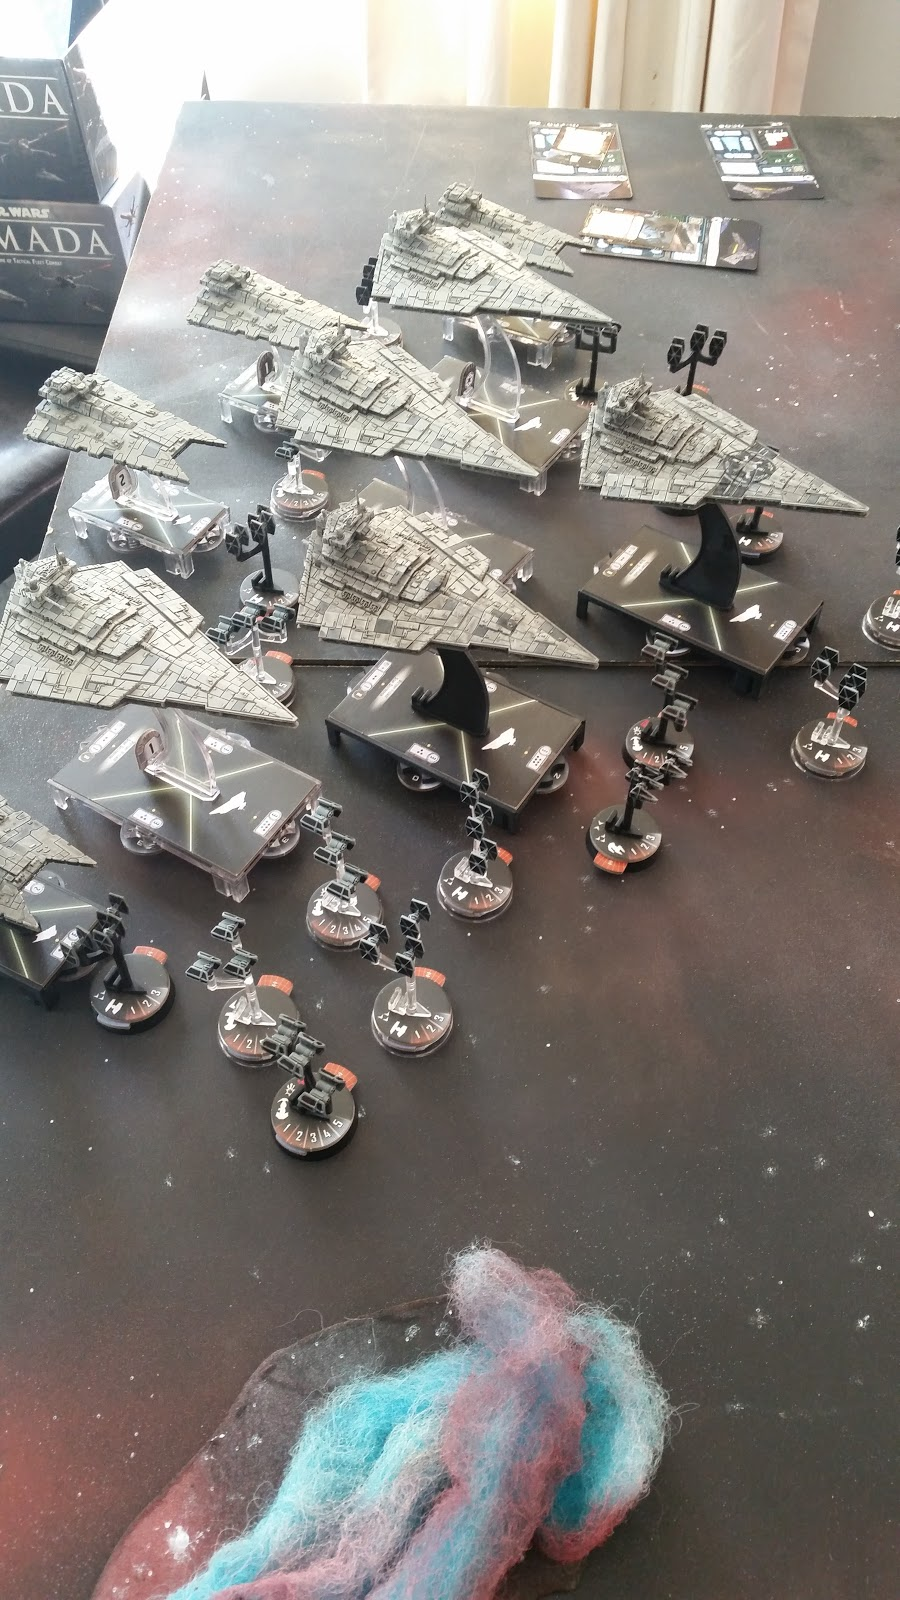 Krugers Kreations: Star Wars Armada: Epic 4 Player Game